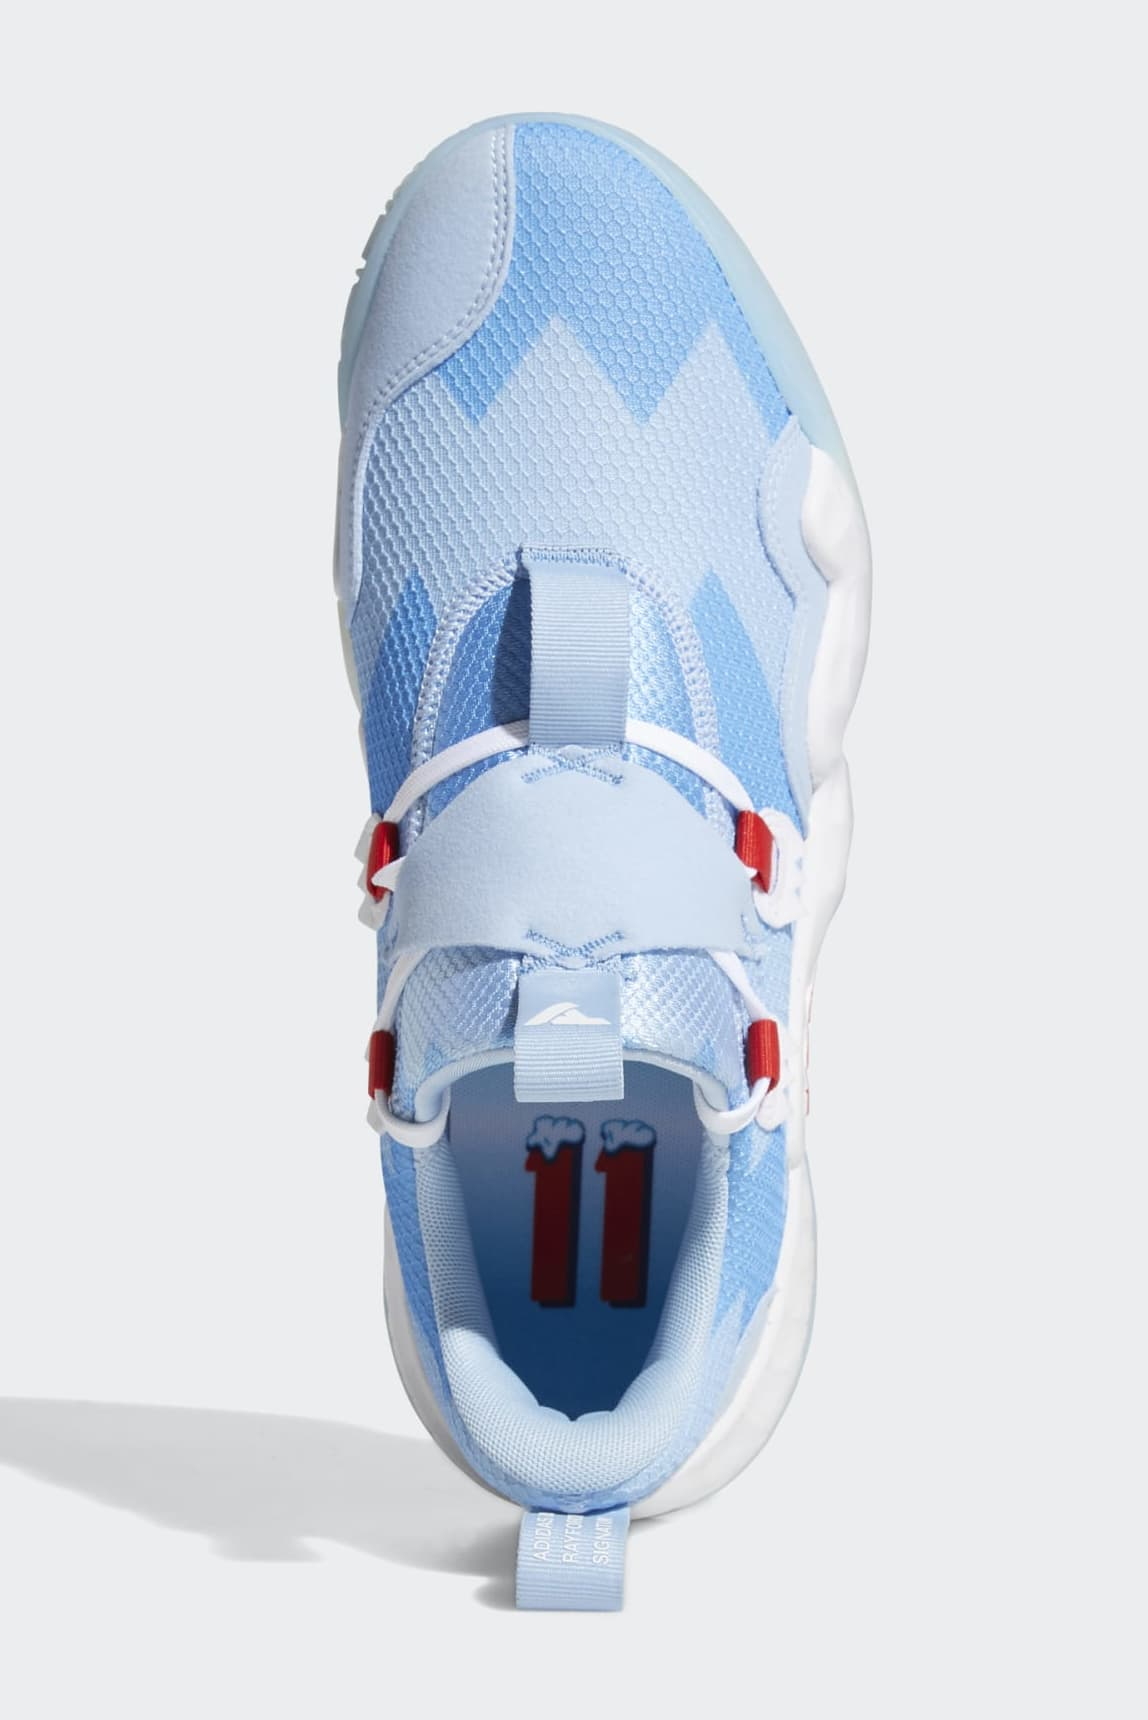 Adidas Trae Young 1 H68997 Top